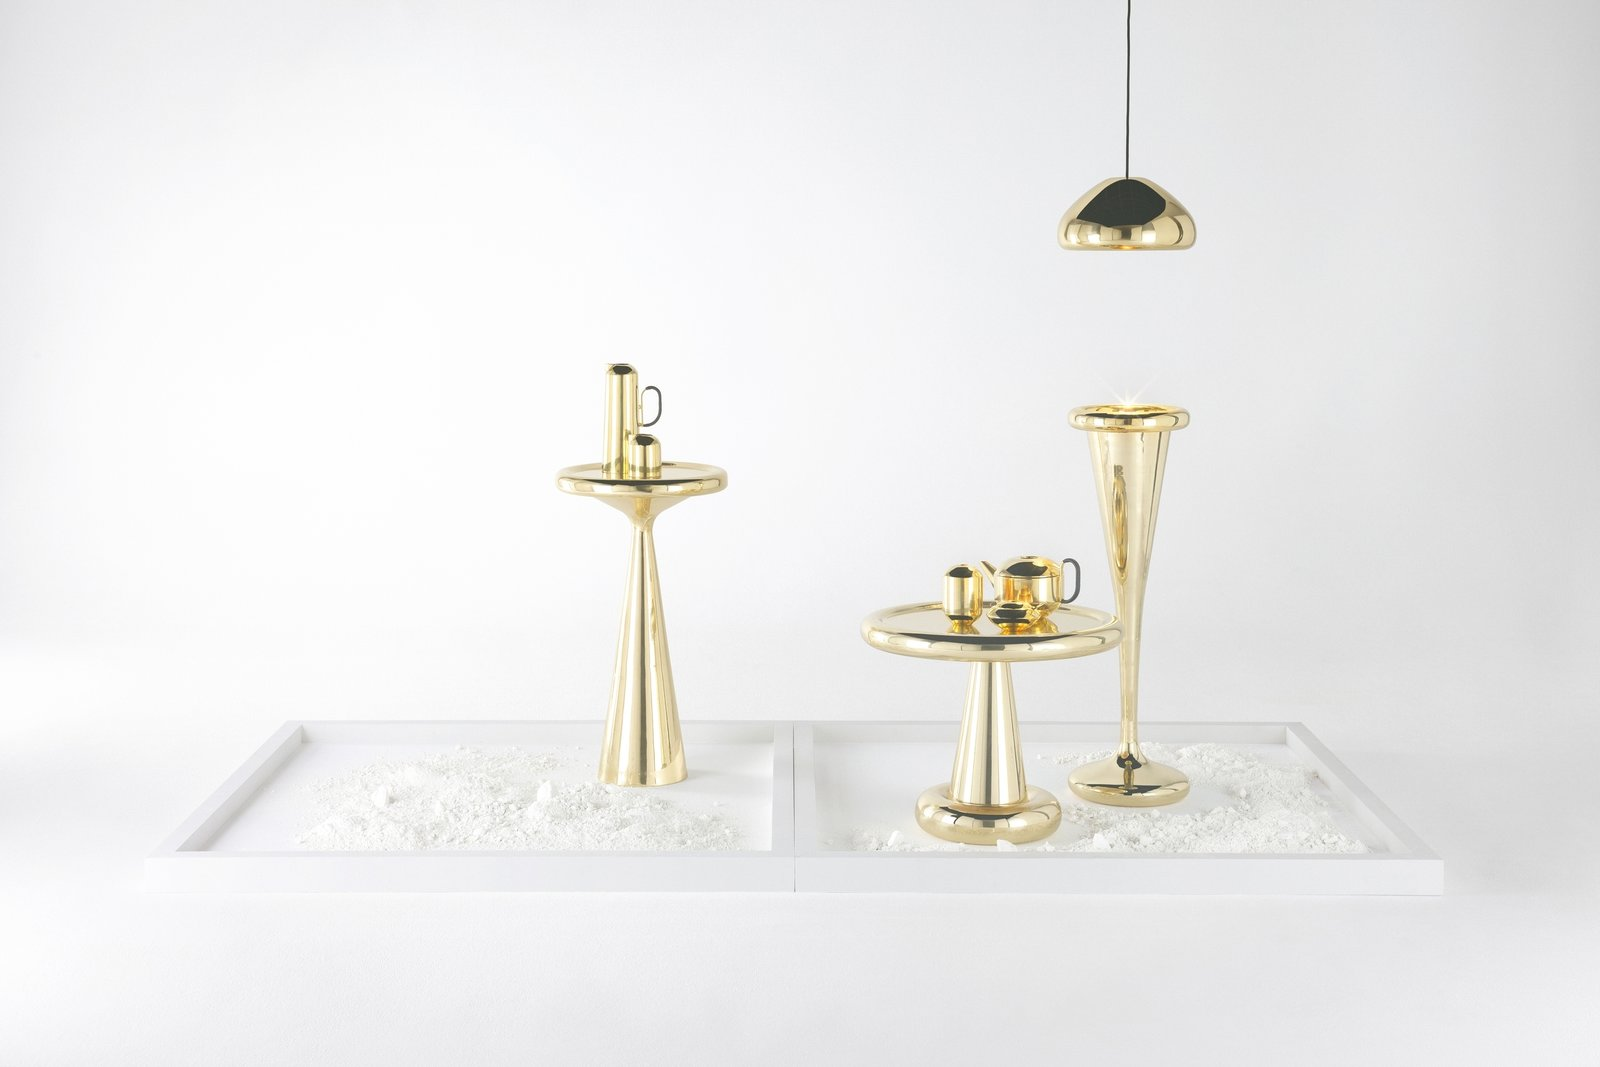 """Spun"" references the space age, with Art Deco and pop influences; these three pieces are meant to imbue ""disco glamor.""  Tom Dixon's New Collection for Salone 2013 by Olivia Martin"